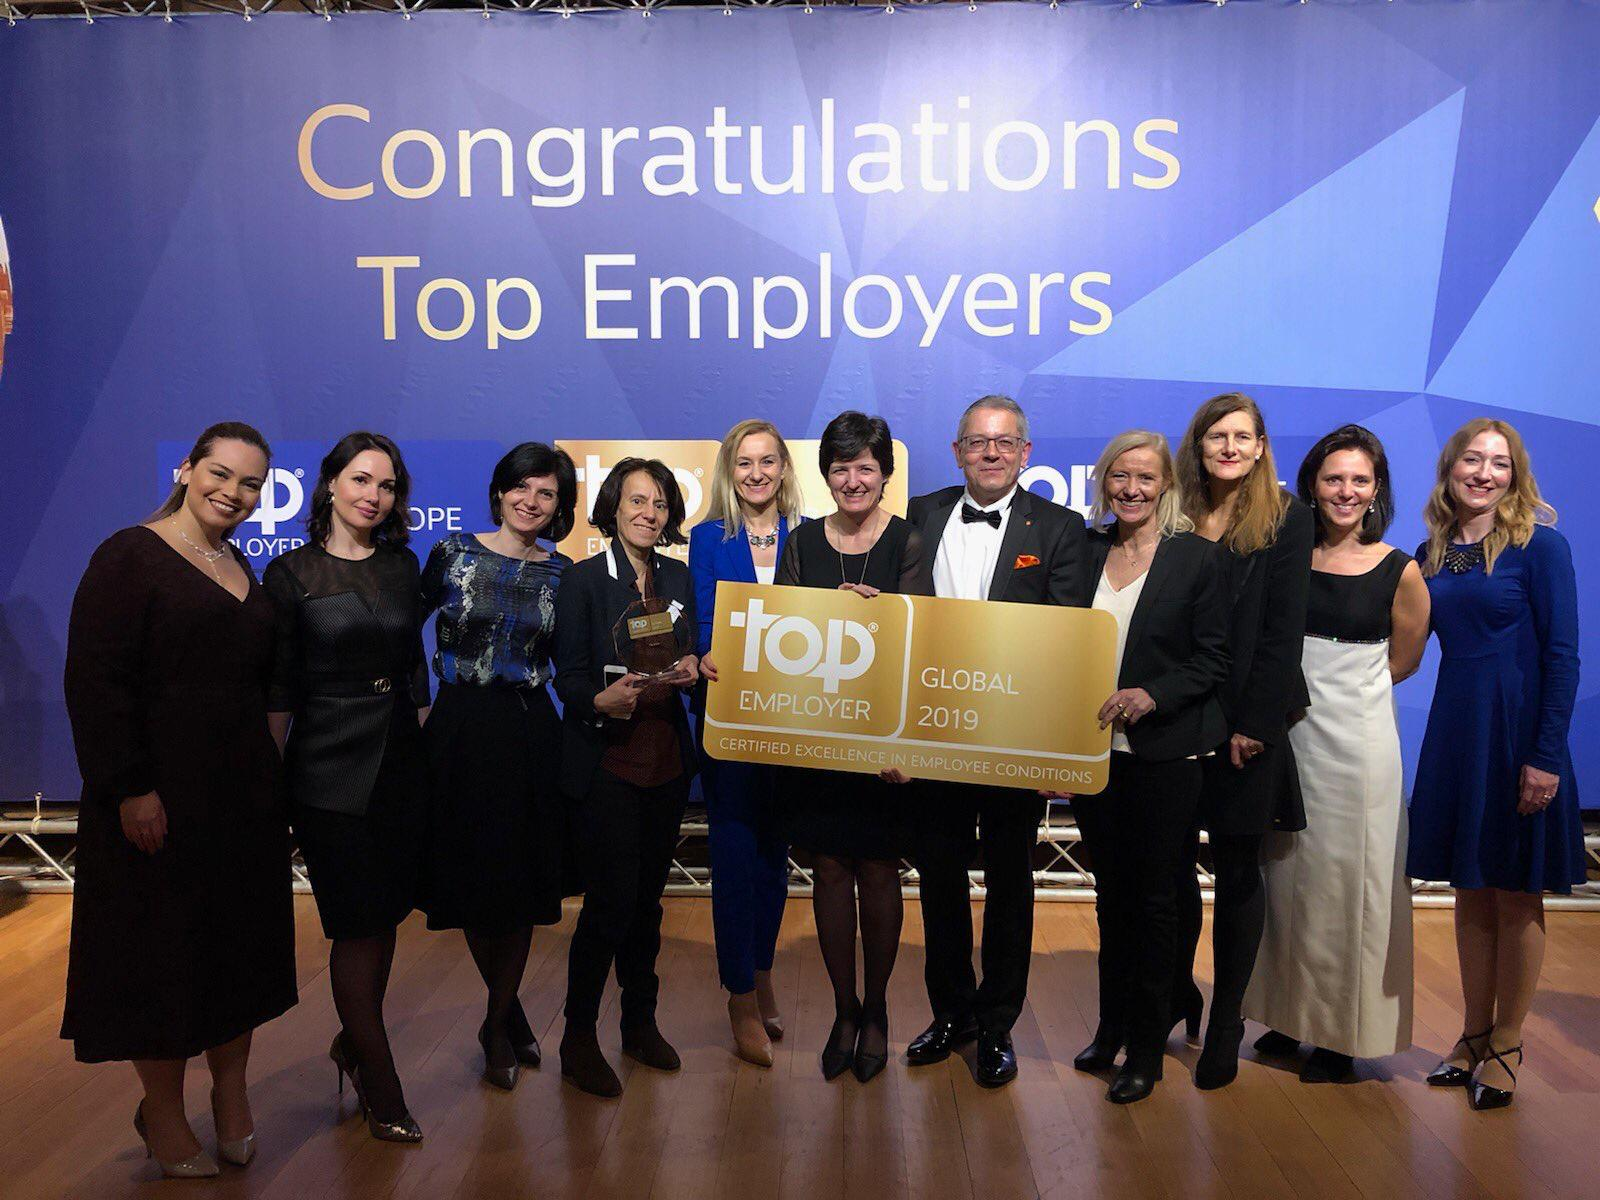 Orange Group has once again been named Top Employer Global